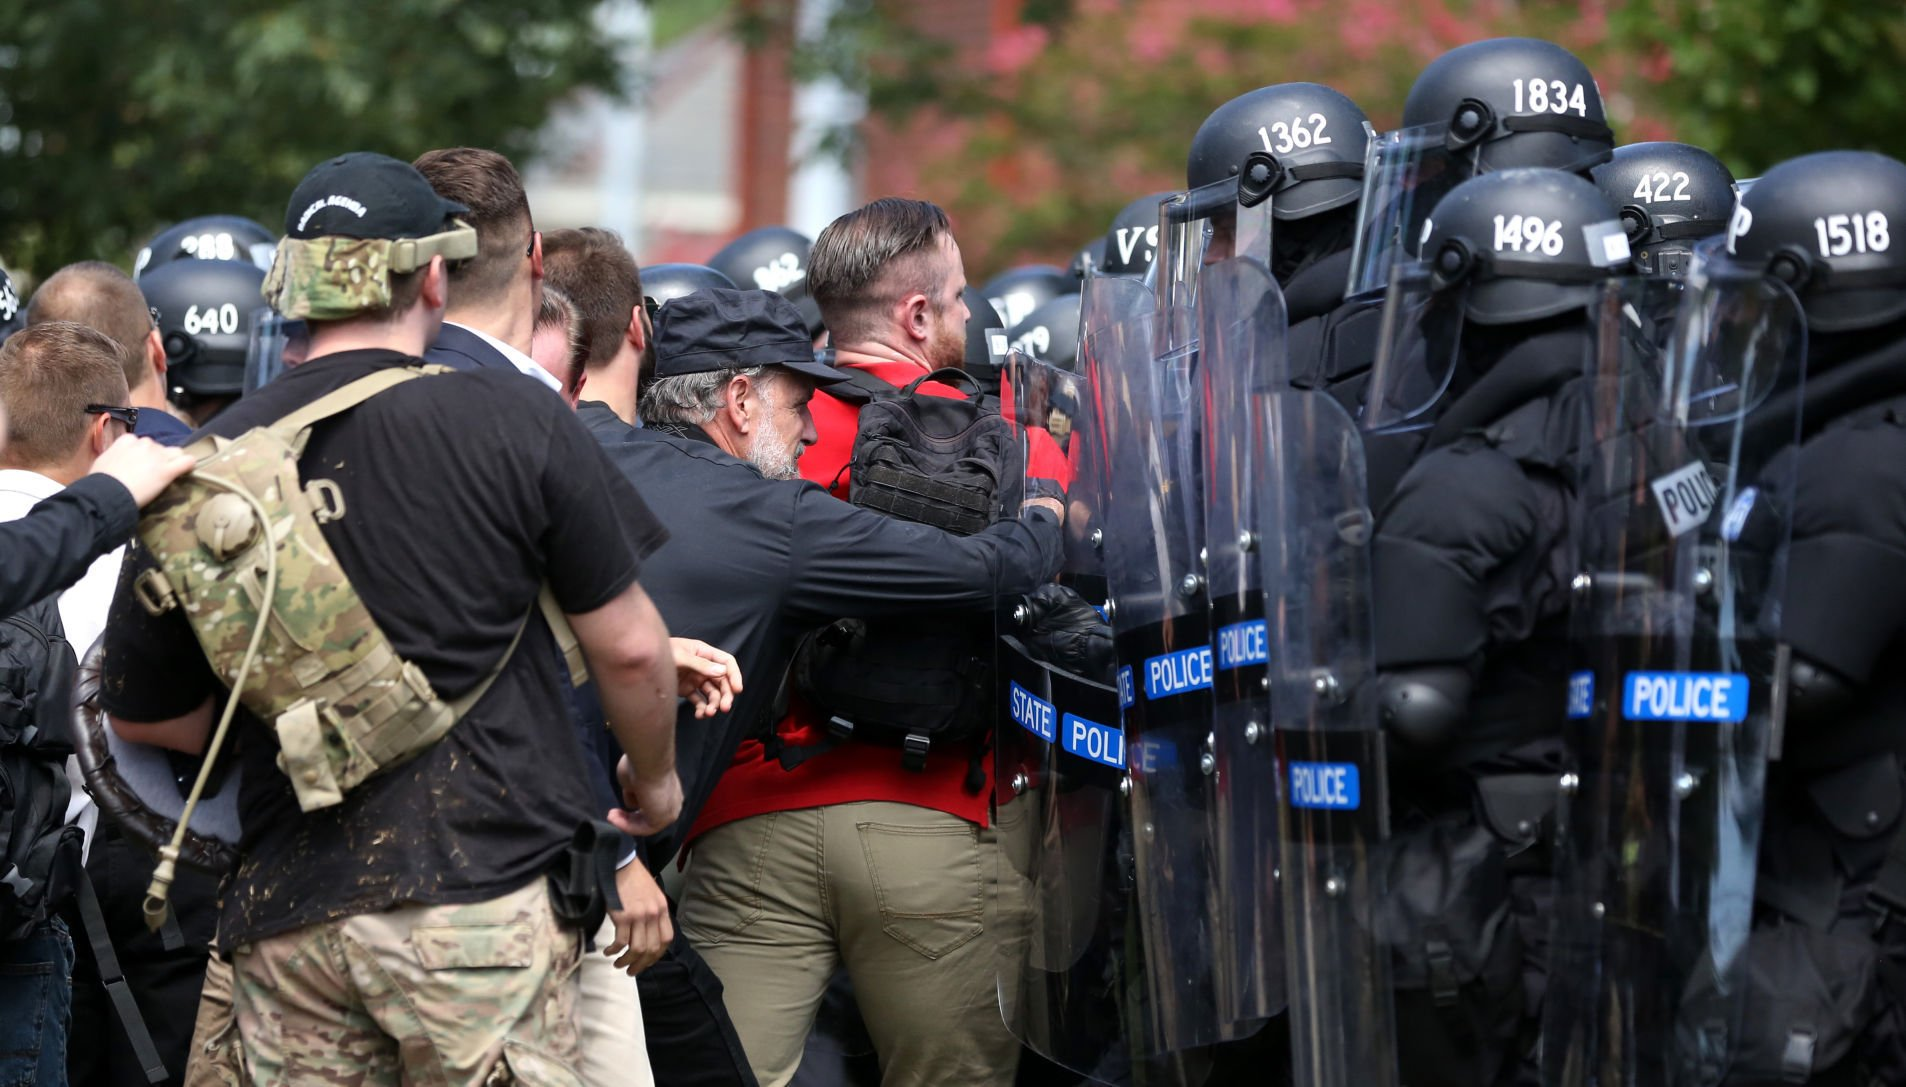 Arrest Warrant Issued for White Nationalist Who Attended Charlottesville Rally